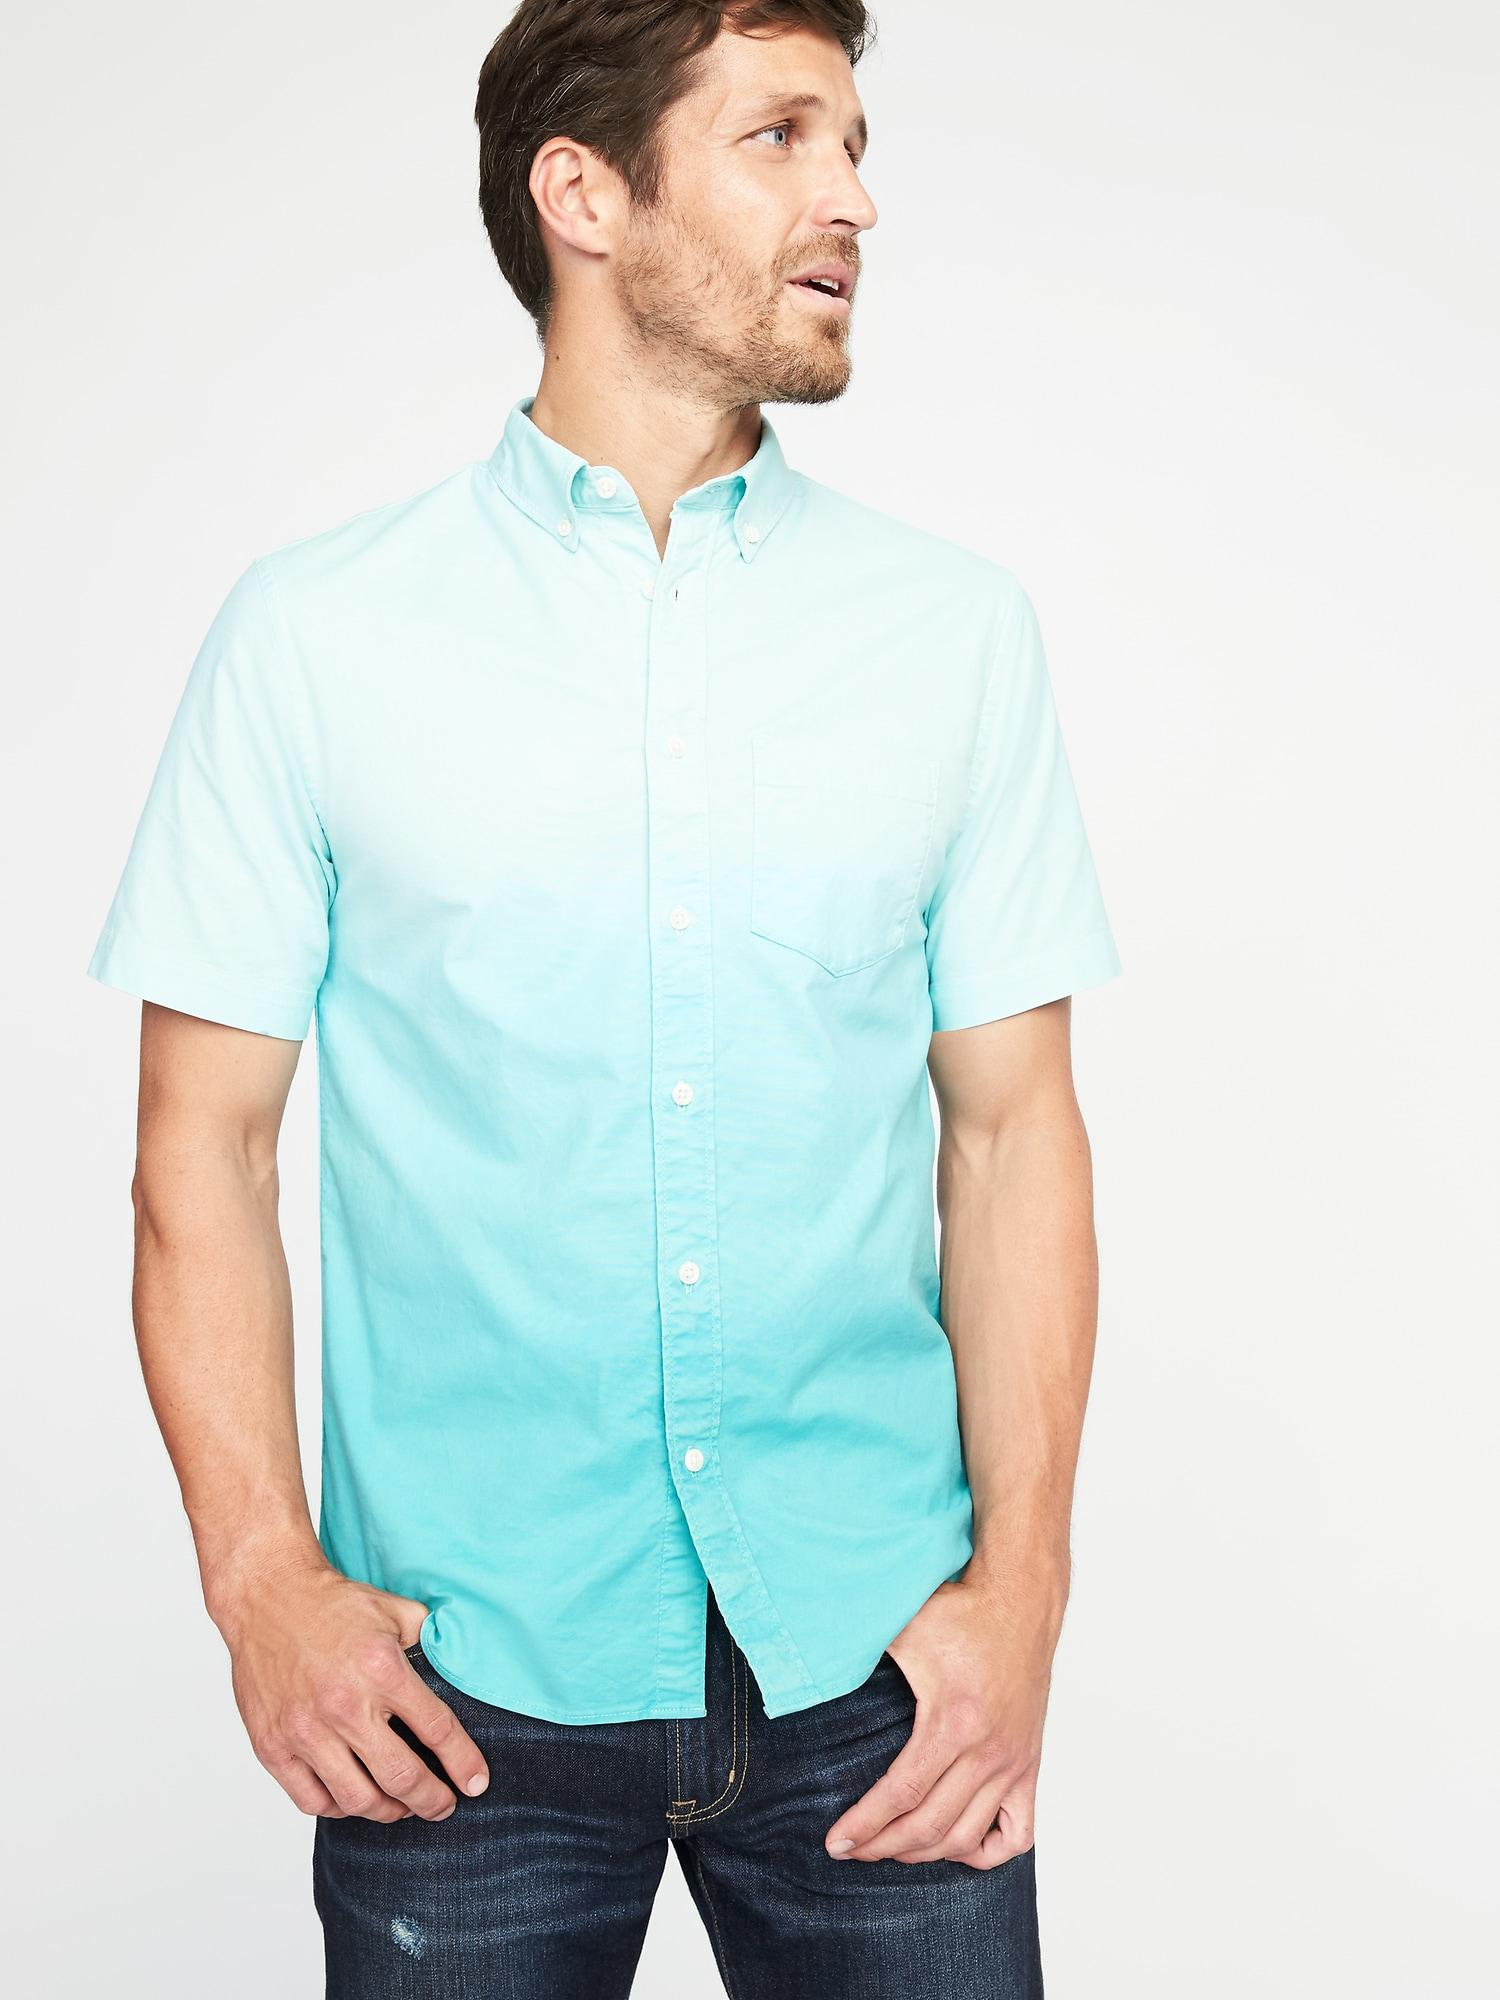 f68e0ec5a1 Old Navy Mens Slim Fit Shirts - Ortsplanungsrevision Stadt Thun